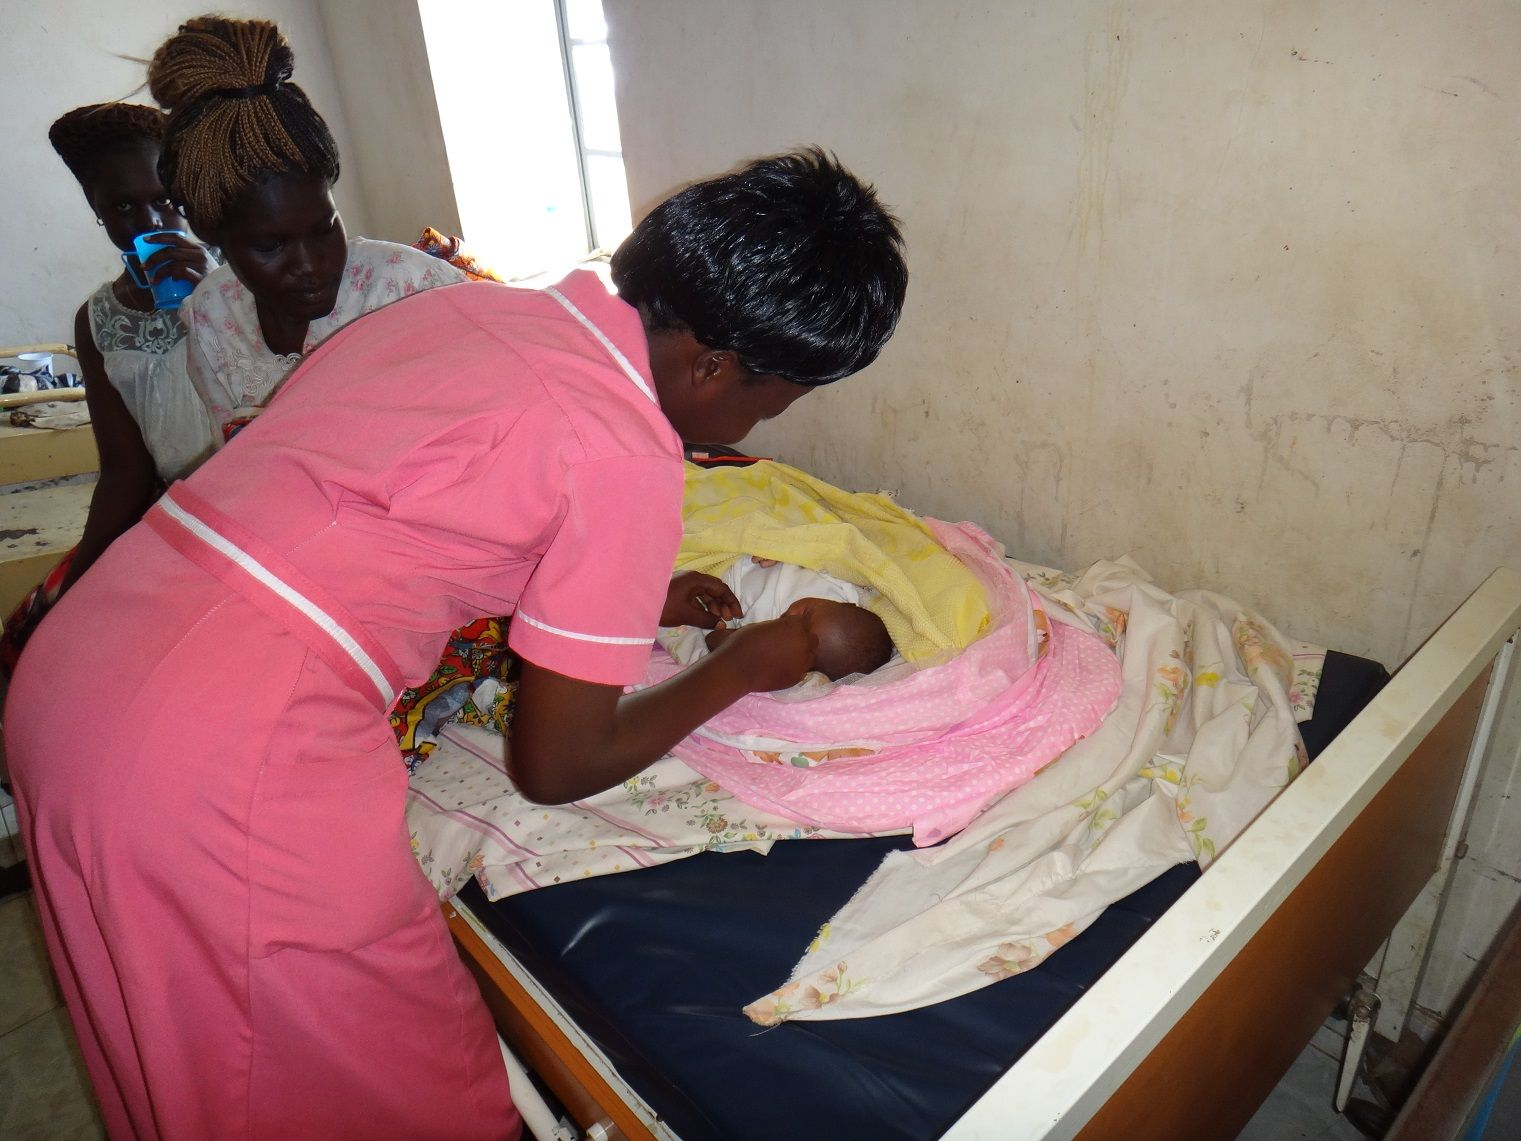 Midwife treats infant in South Sudan